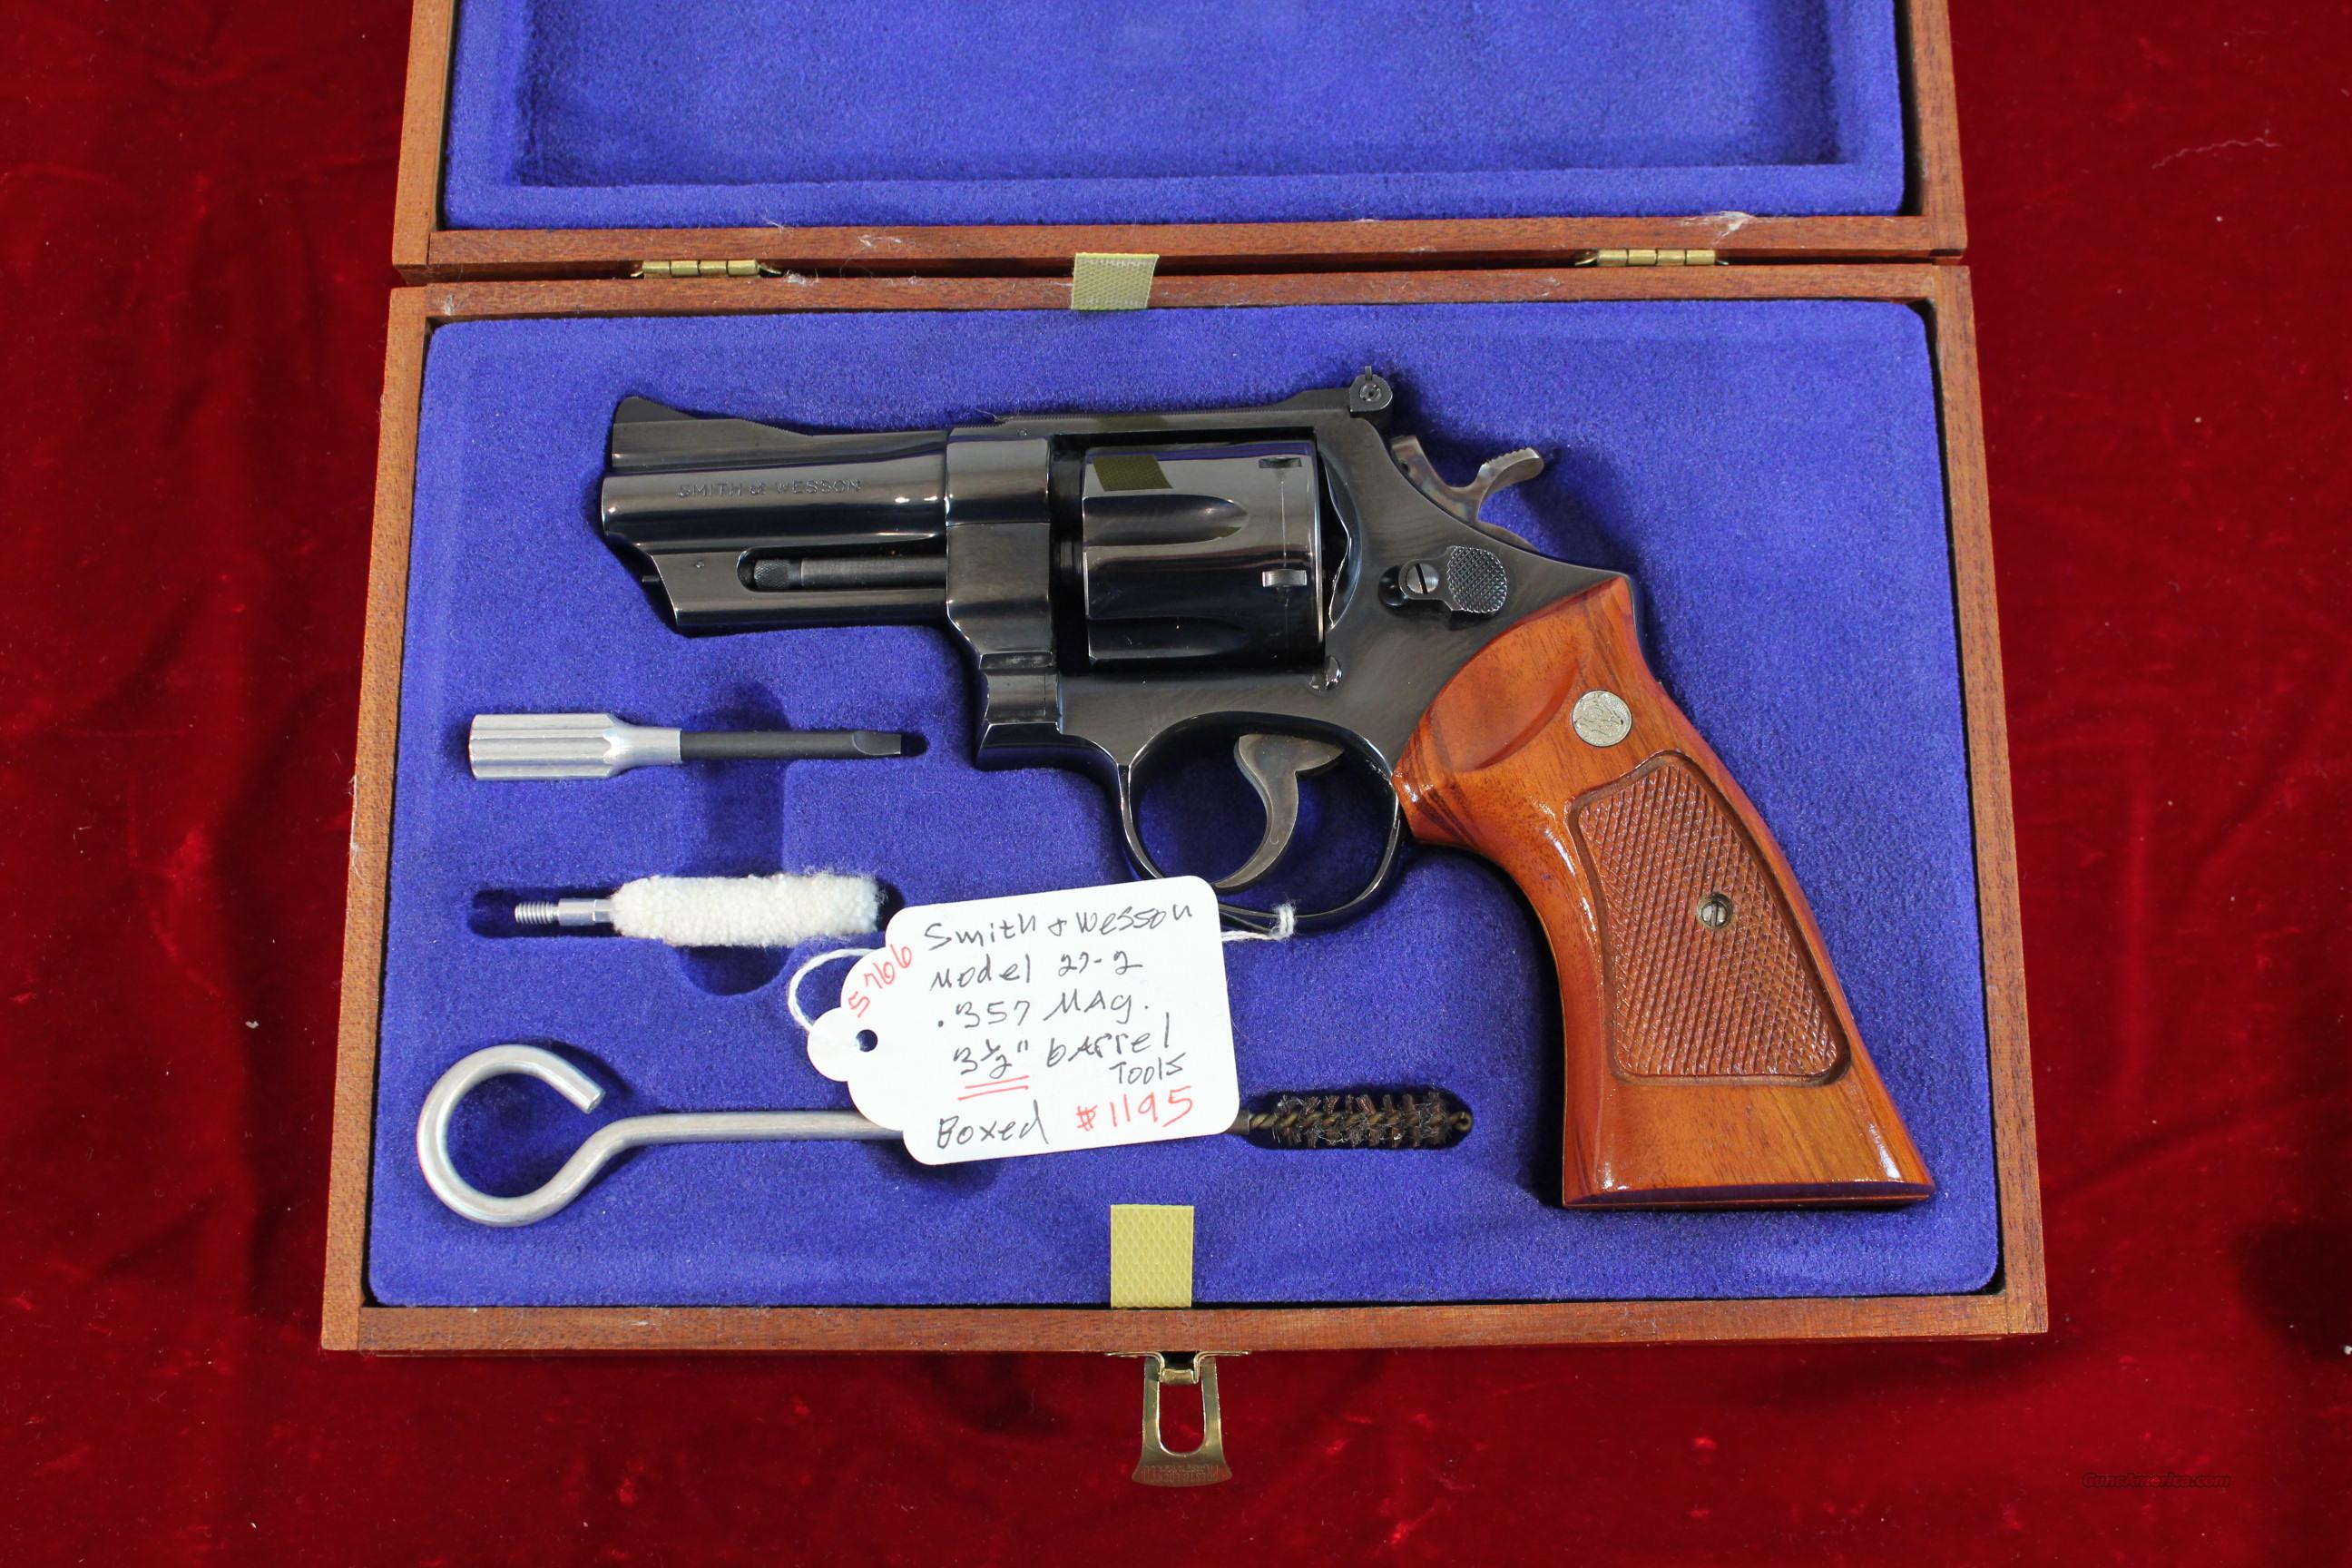 "Smith & Wesson Model 27-2, 3-1/2"" .357 Magnum, Cased  Guns > Pistols > Smith & Wesson Revolvers > Full Frame Revolver"